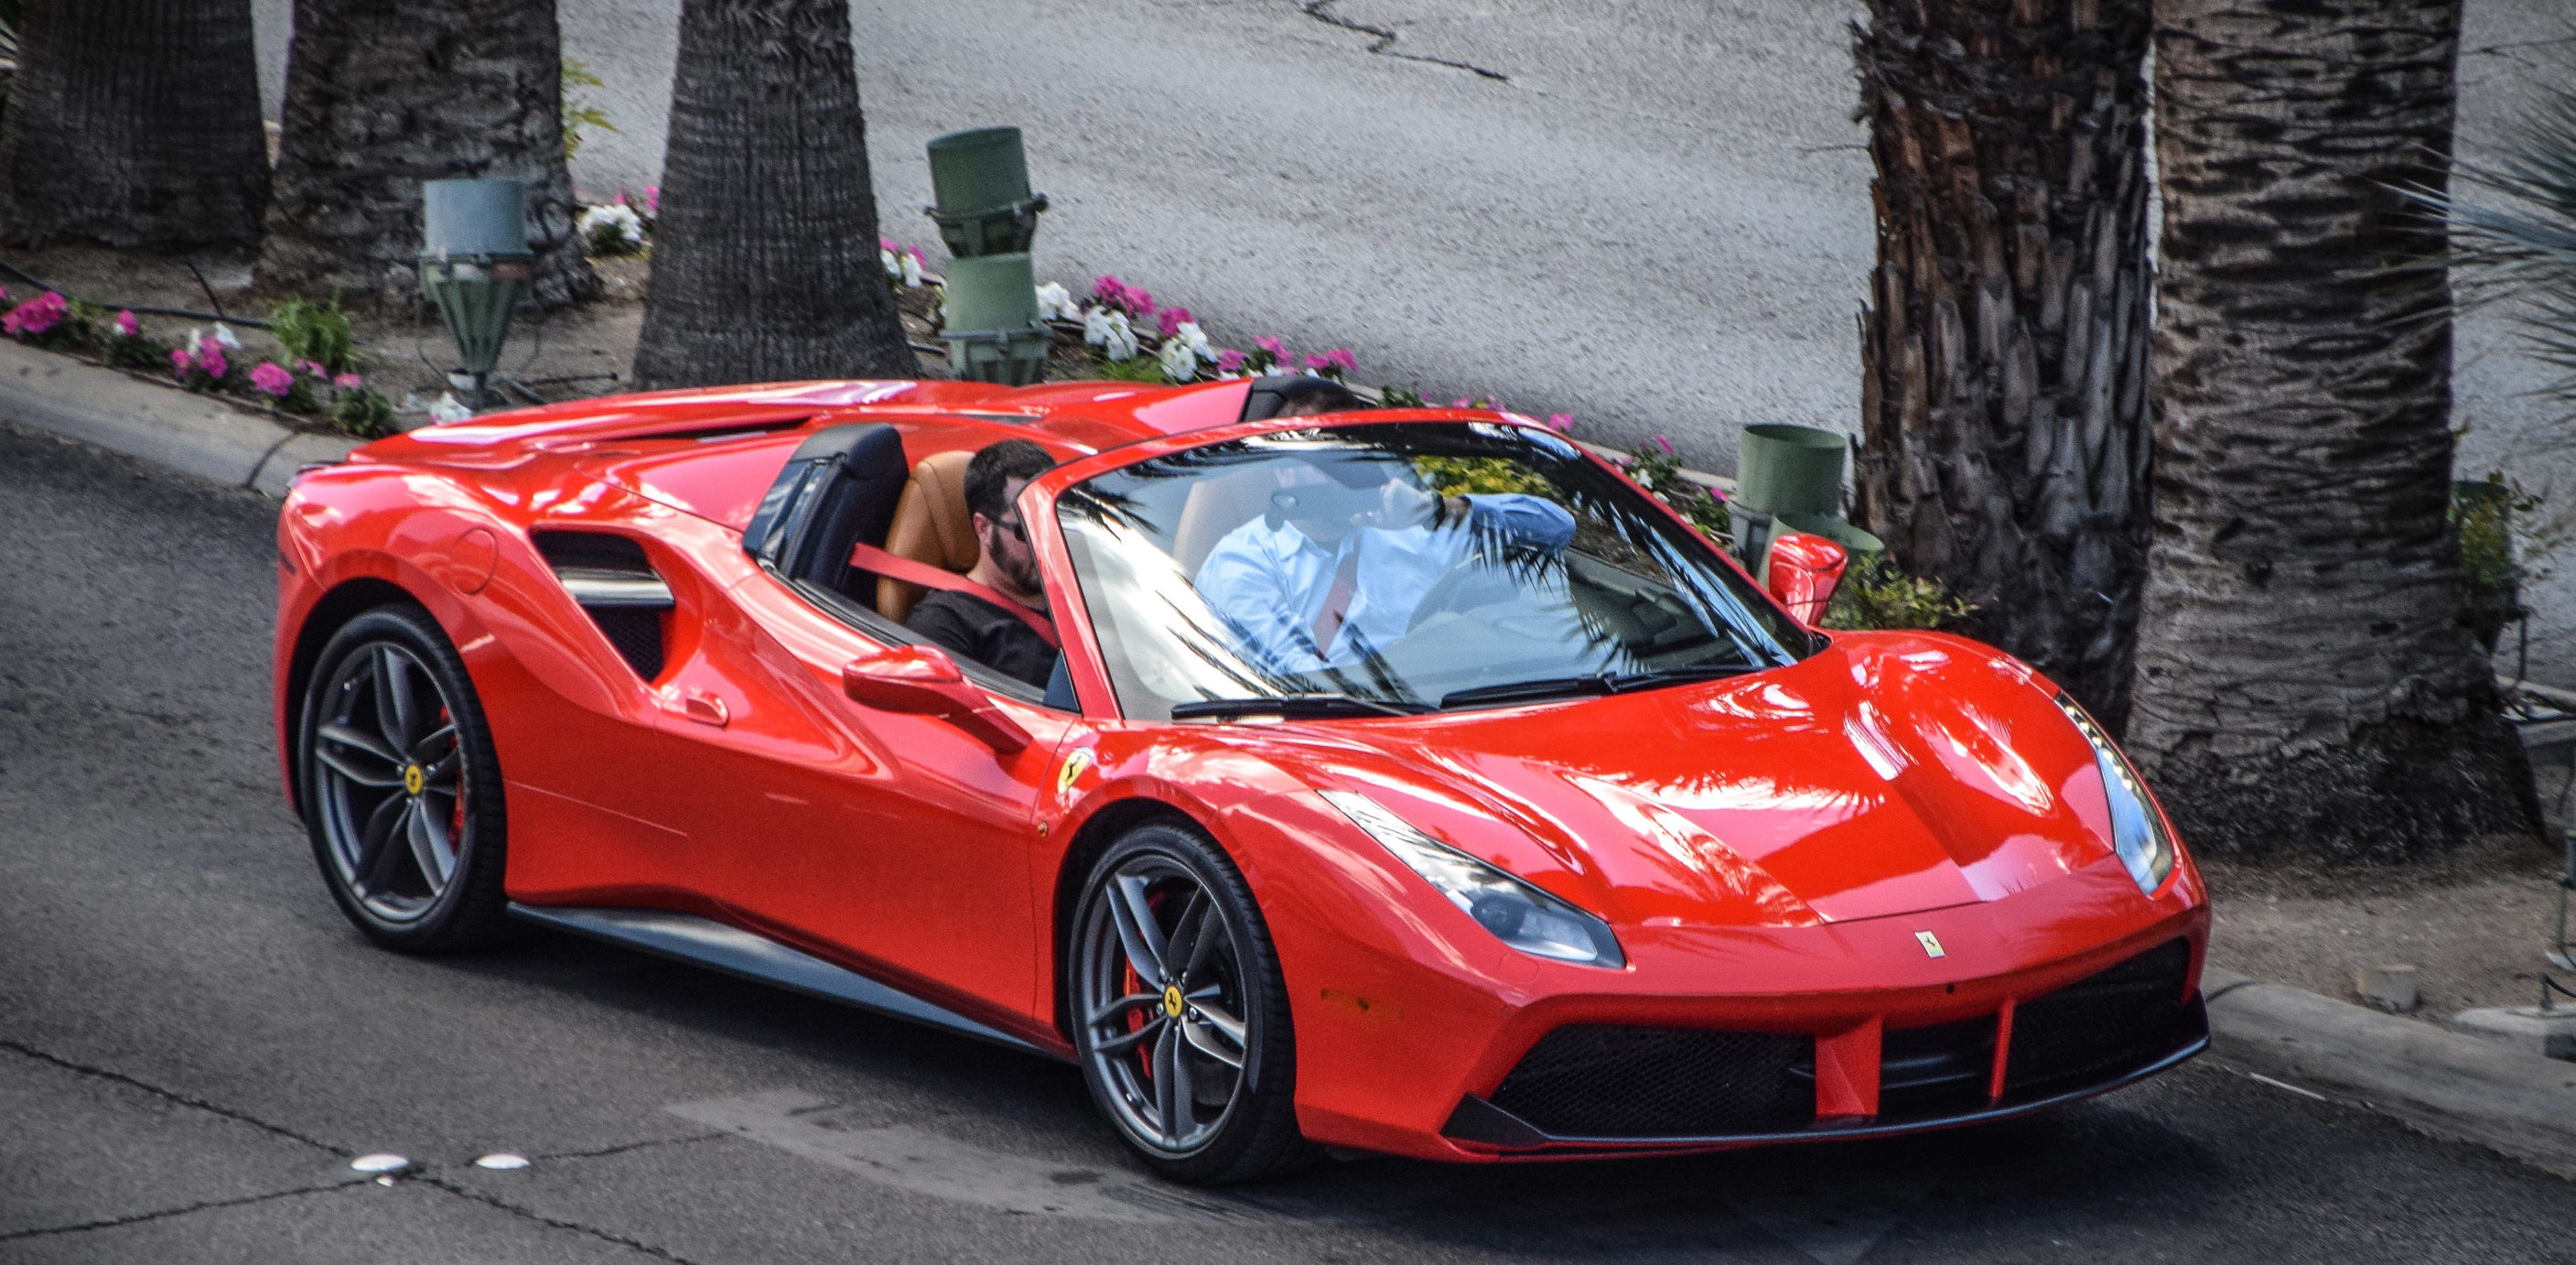 ferrari-488-spider-rental-miami-beach-florida